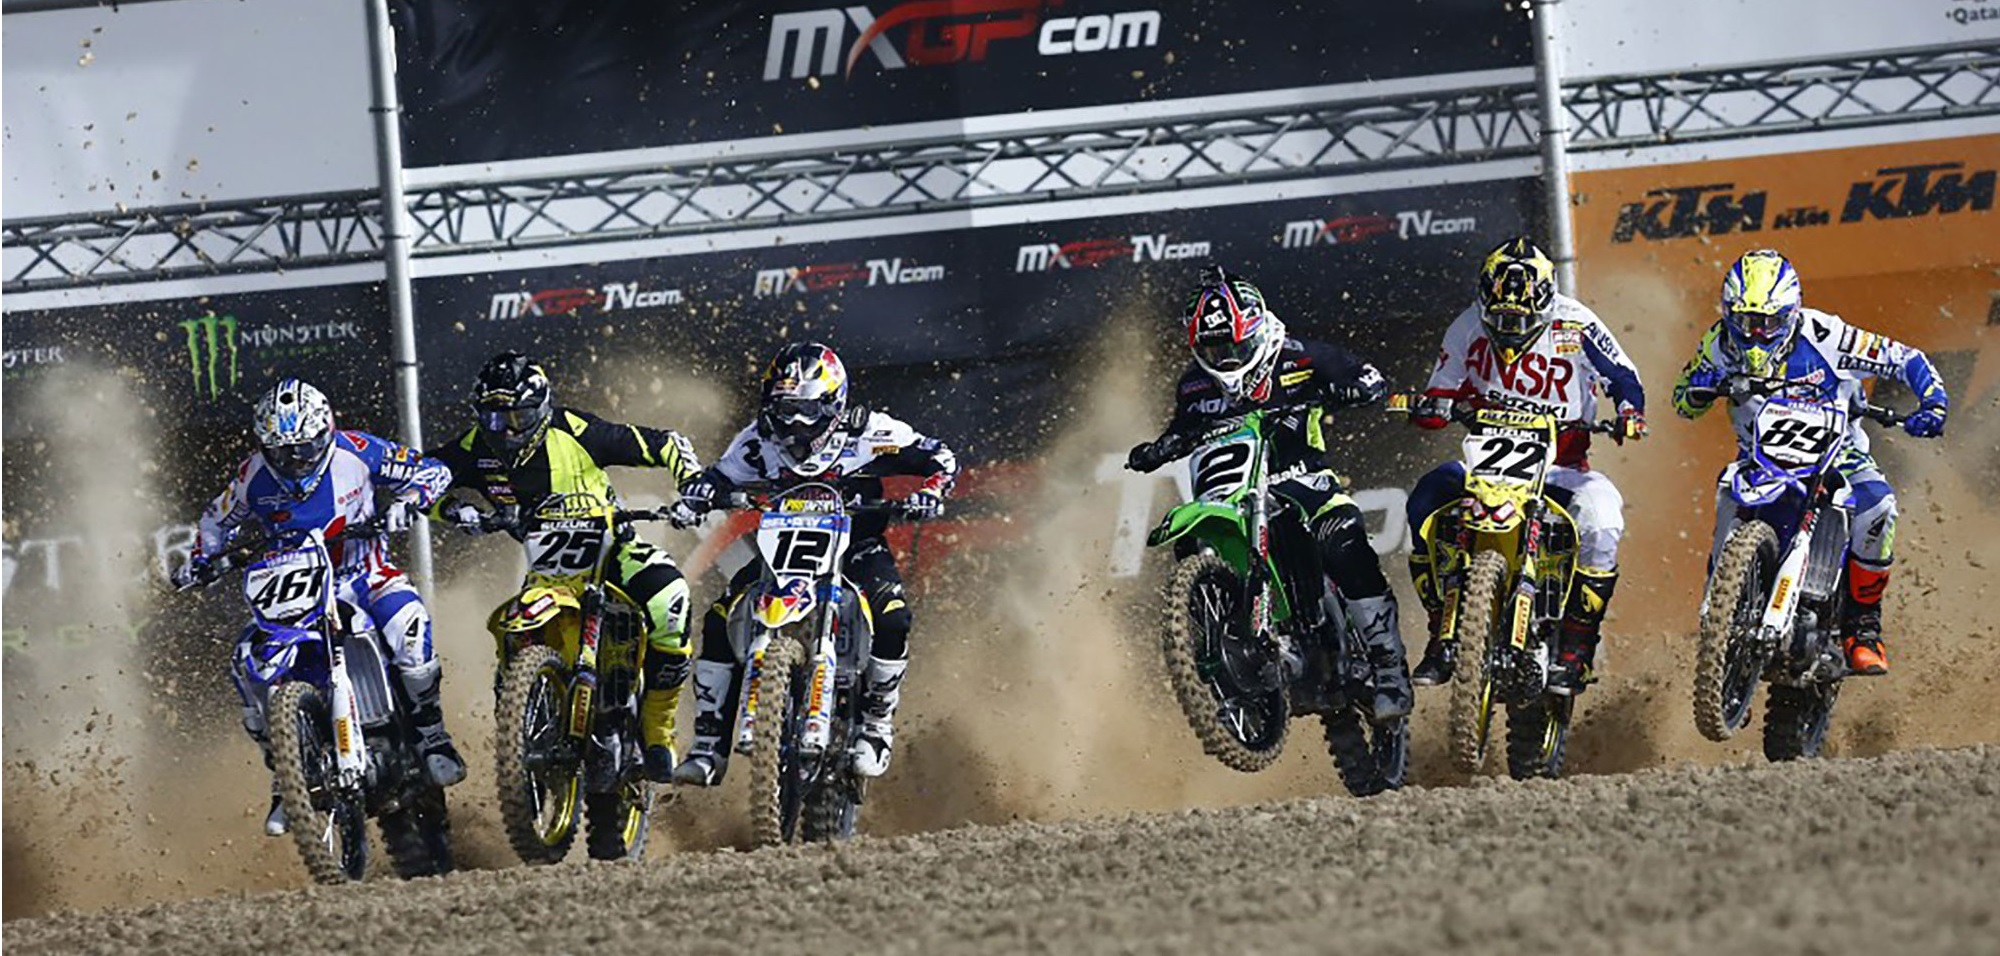 HSL in the 2015 MXGP season !